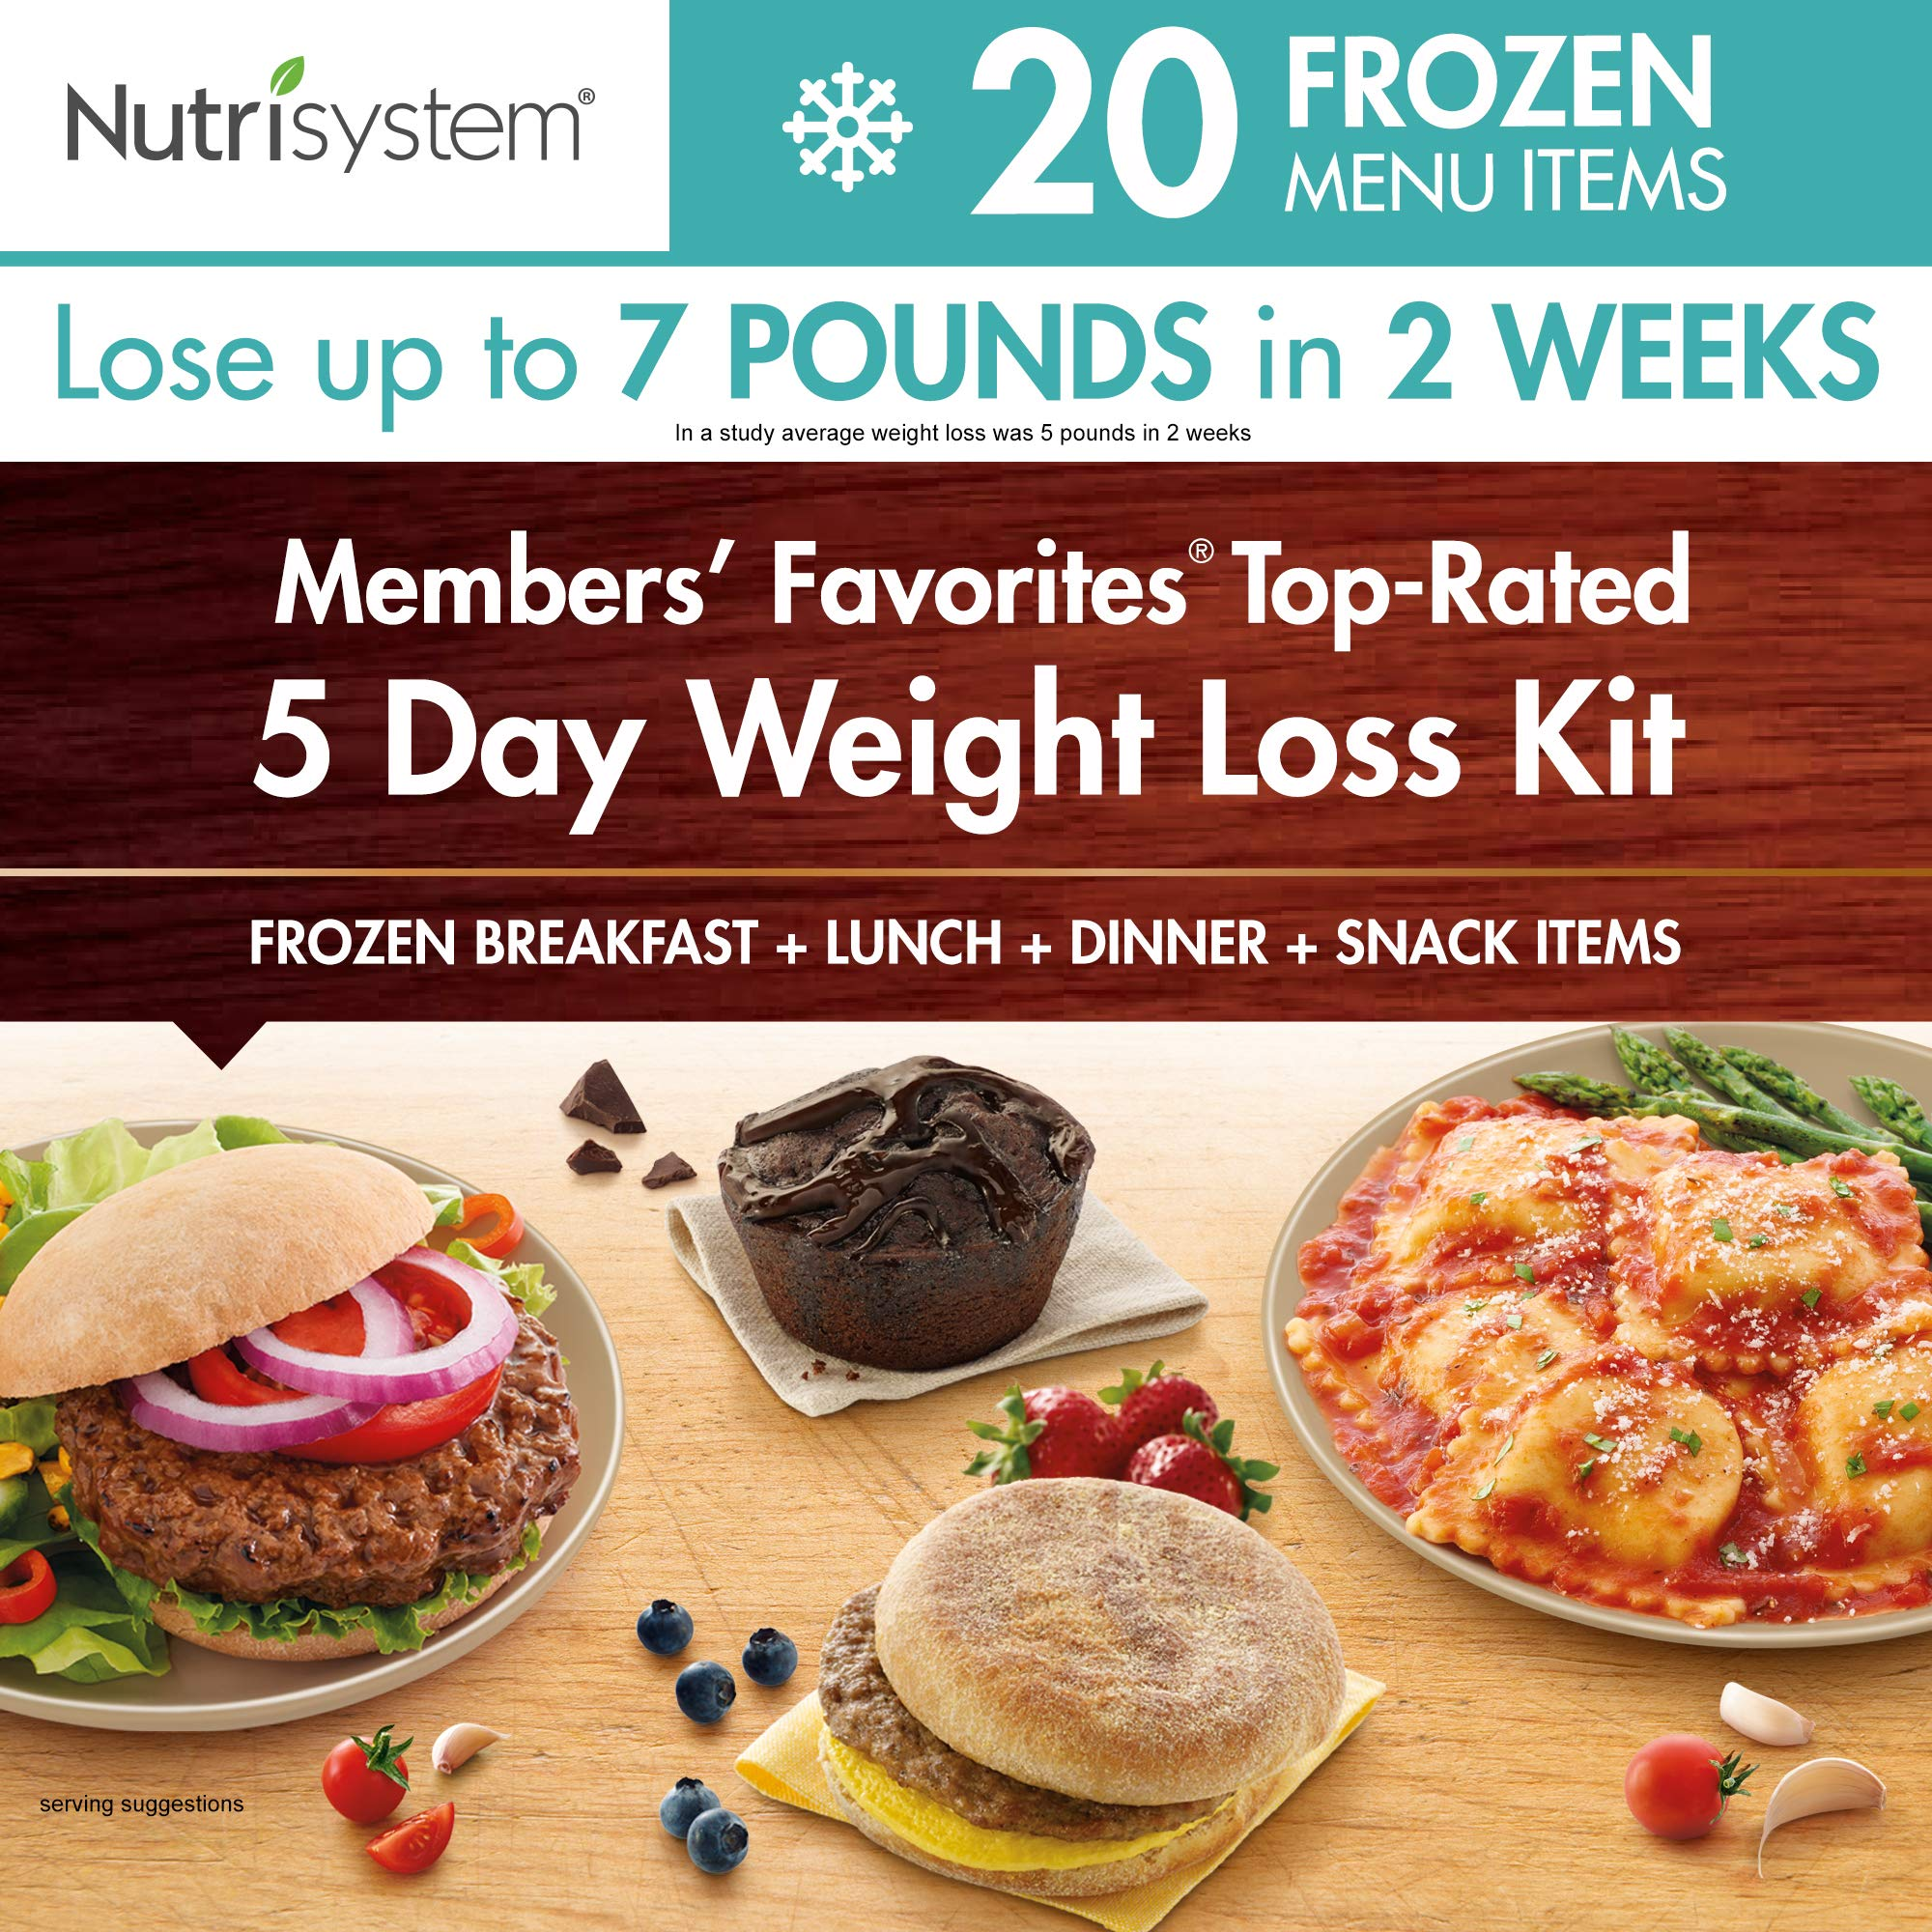 Nutrisystem® Members' Favorites®- TOP Rated, 5 Day Weight Loss Kit (Frozen) by Nutrisystem